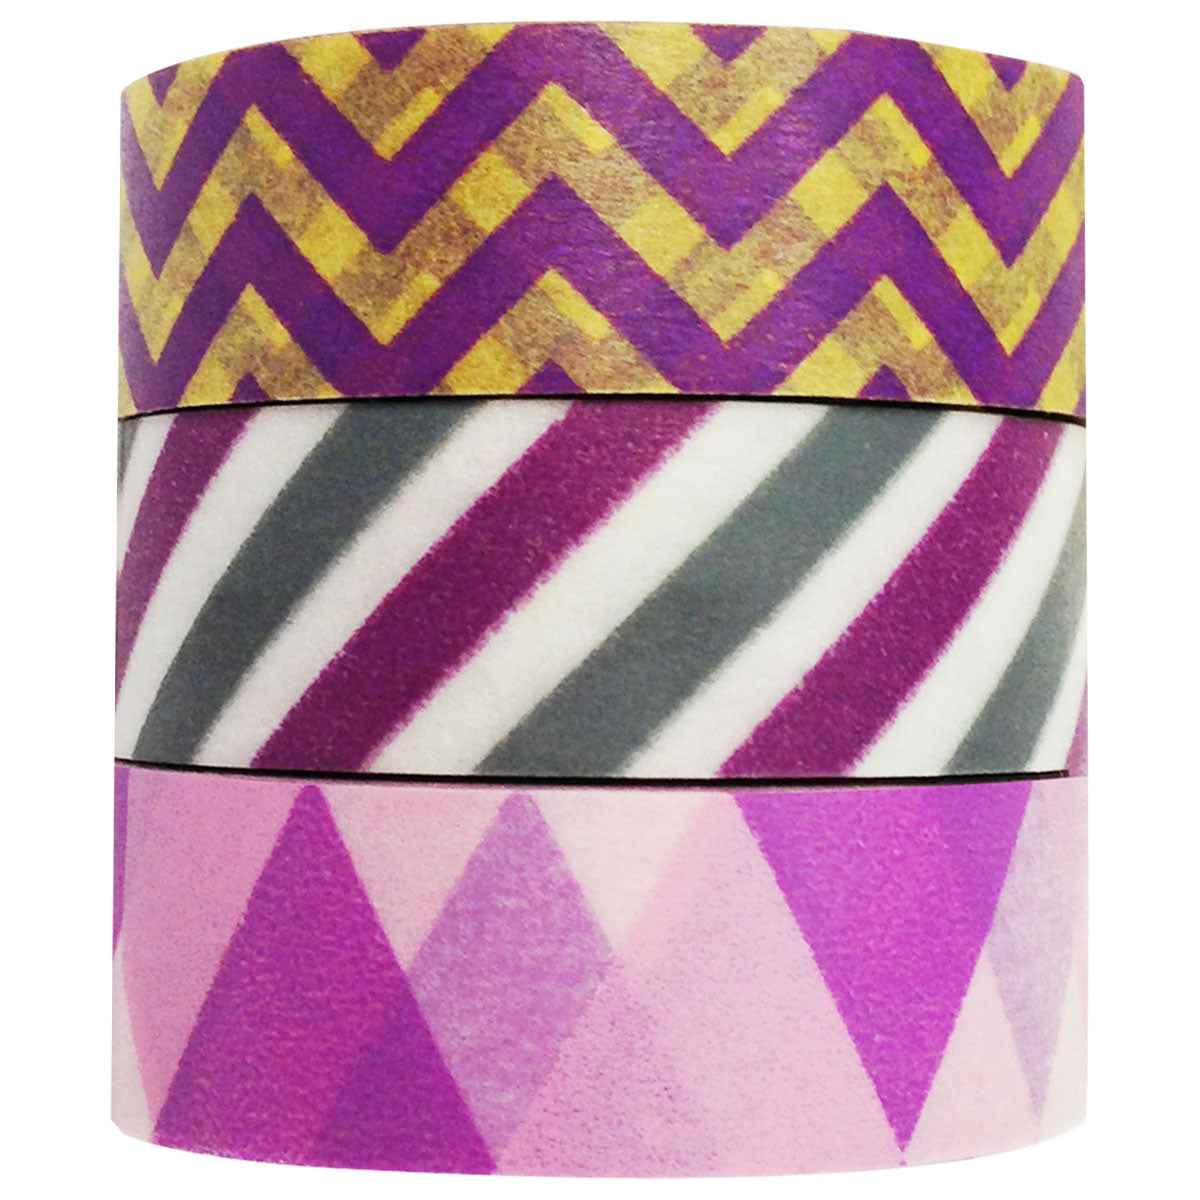 Wrapables Purple Passion Japanese Washi Masking Tape (set of 3)